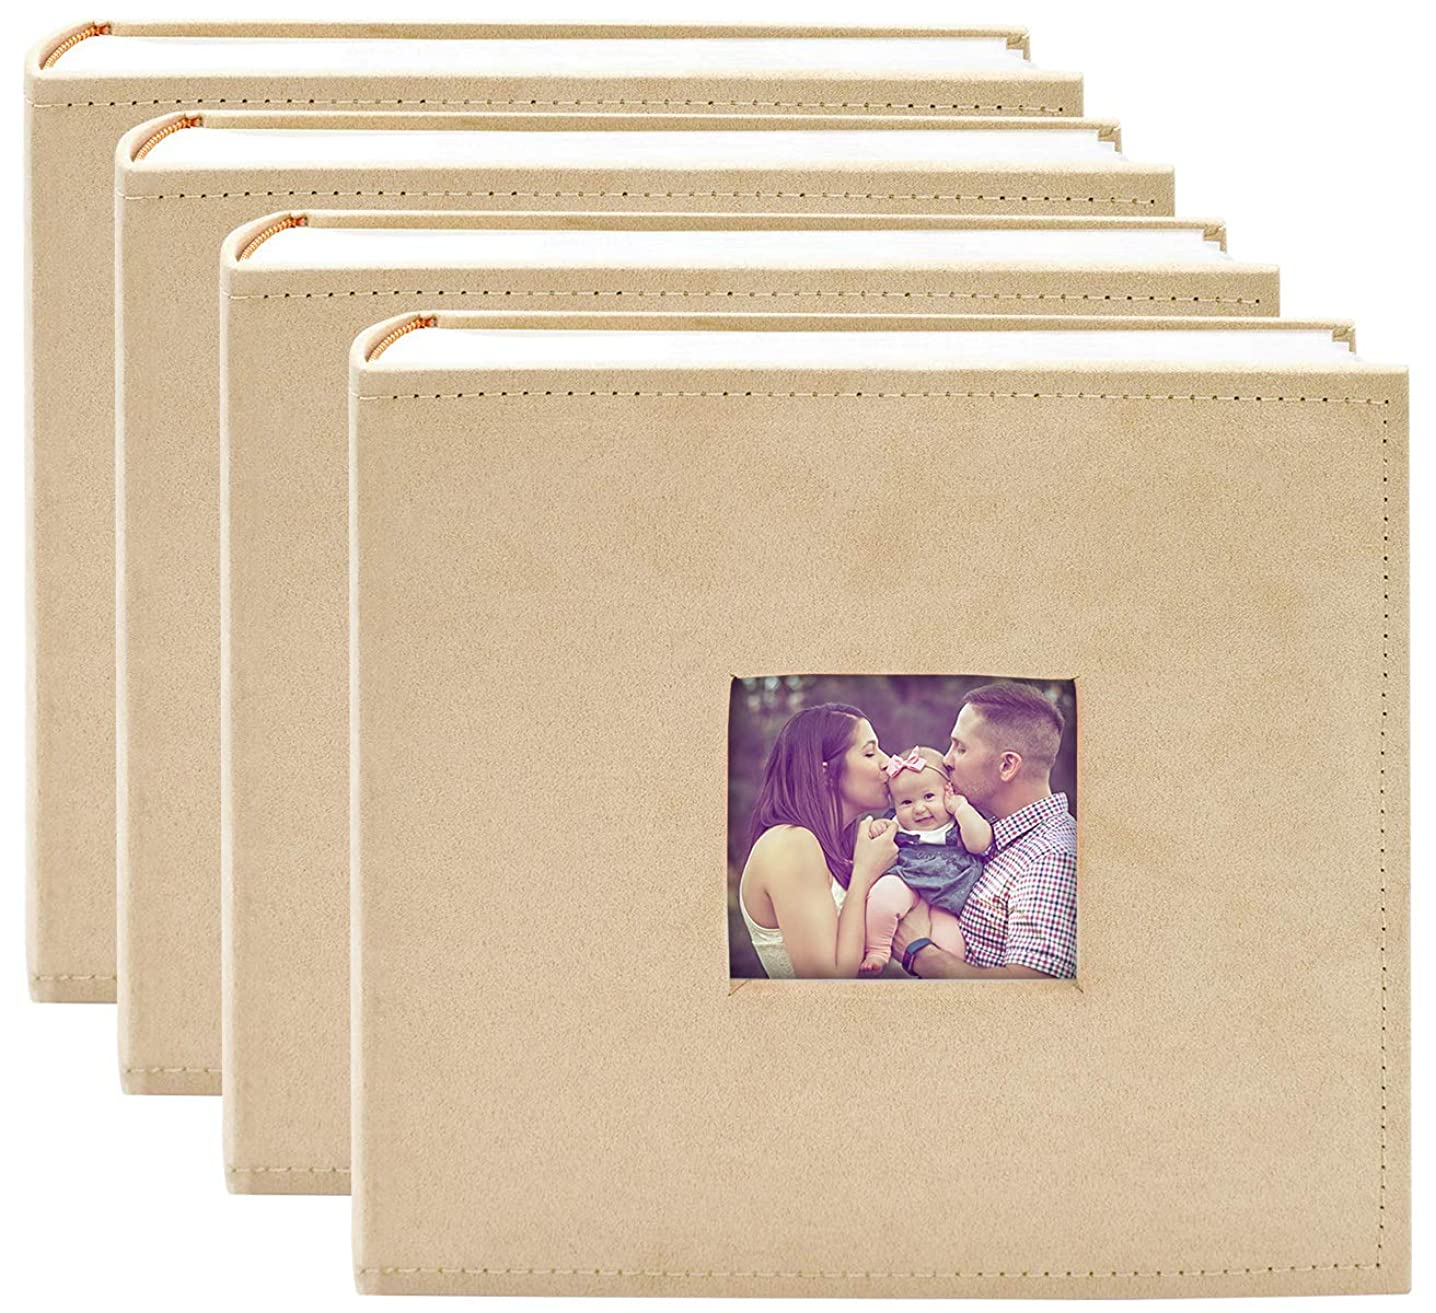 Golden State Art , Beige Suede Cover Photo Album, Holds 200 4x6 Photos, 2 per Page,Set of 4